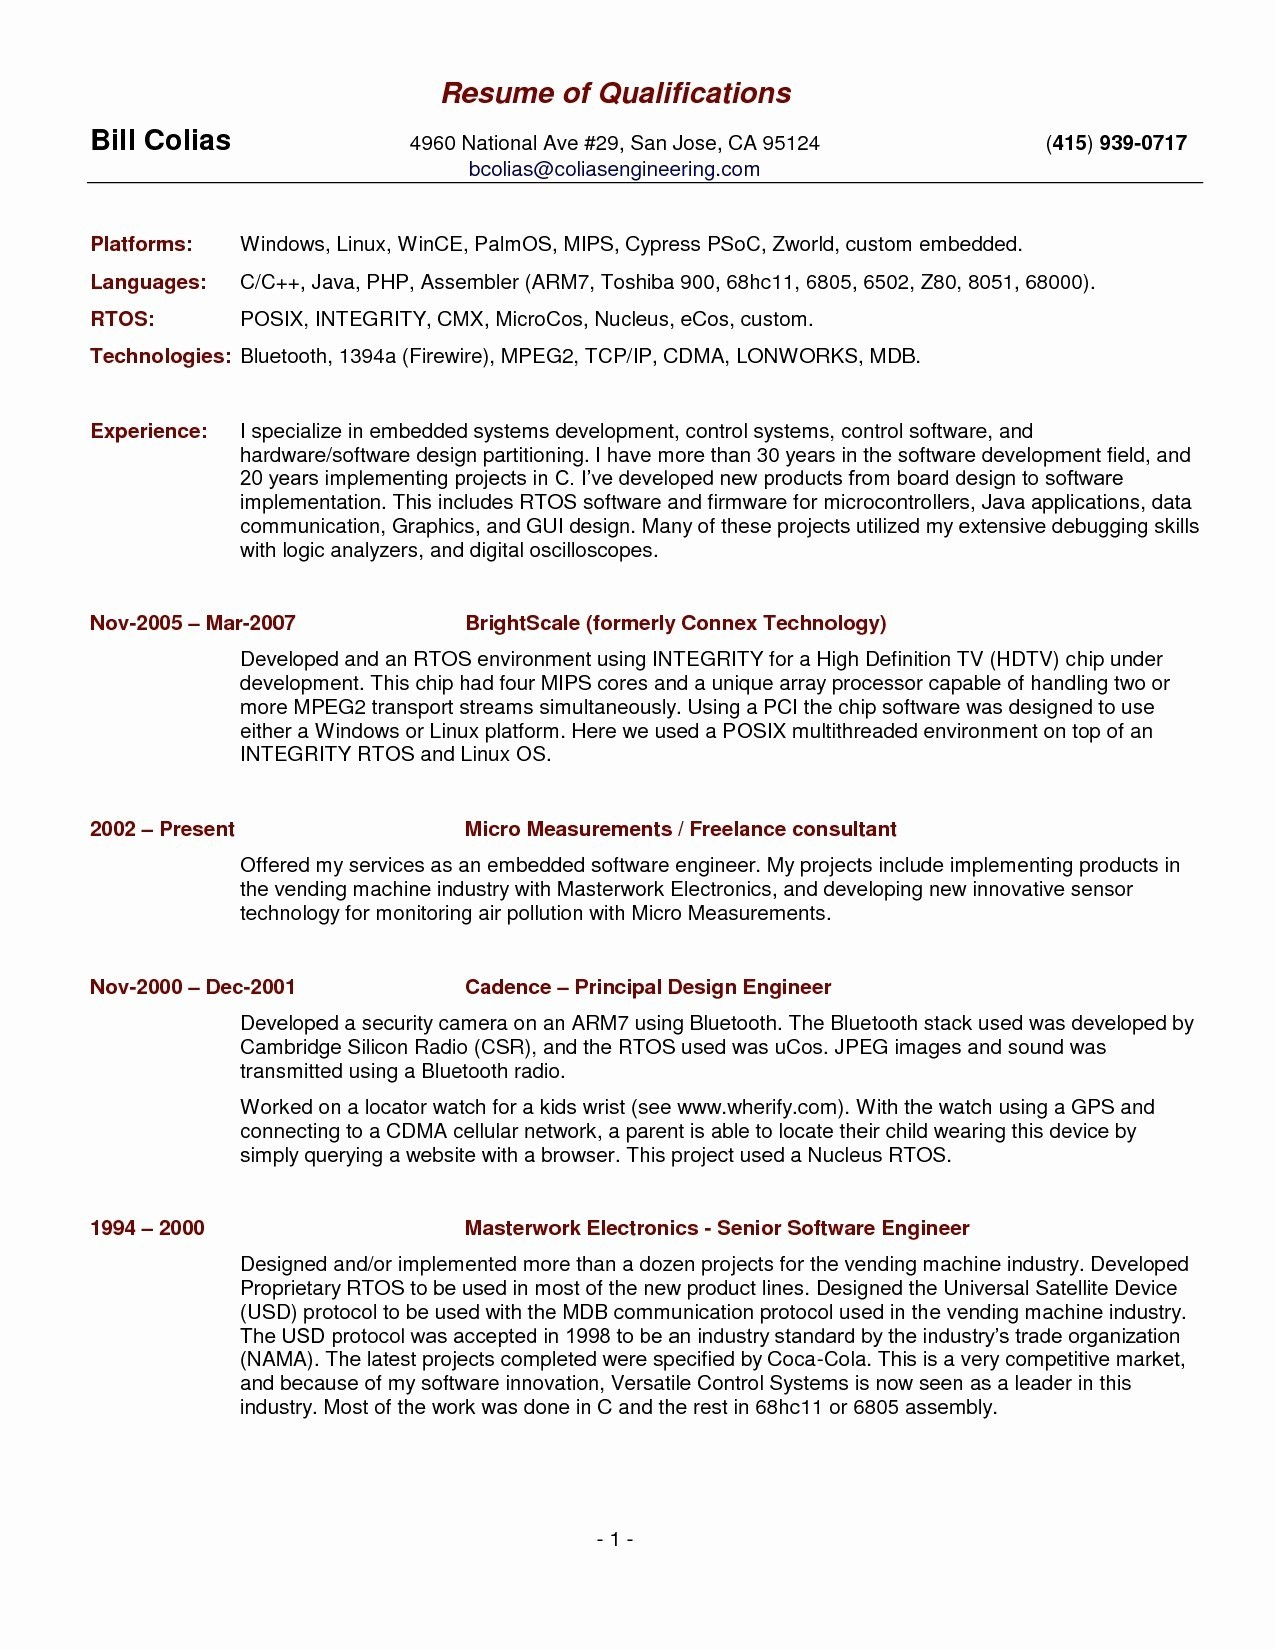 Updated Resume 2018 - Unique Resume Templates Free New Lovely Pr Resume Template Elegant